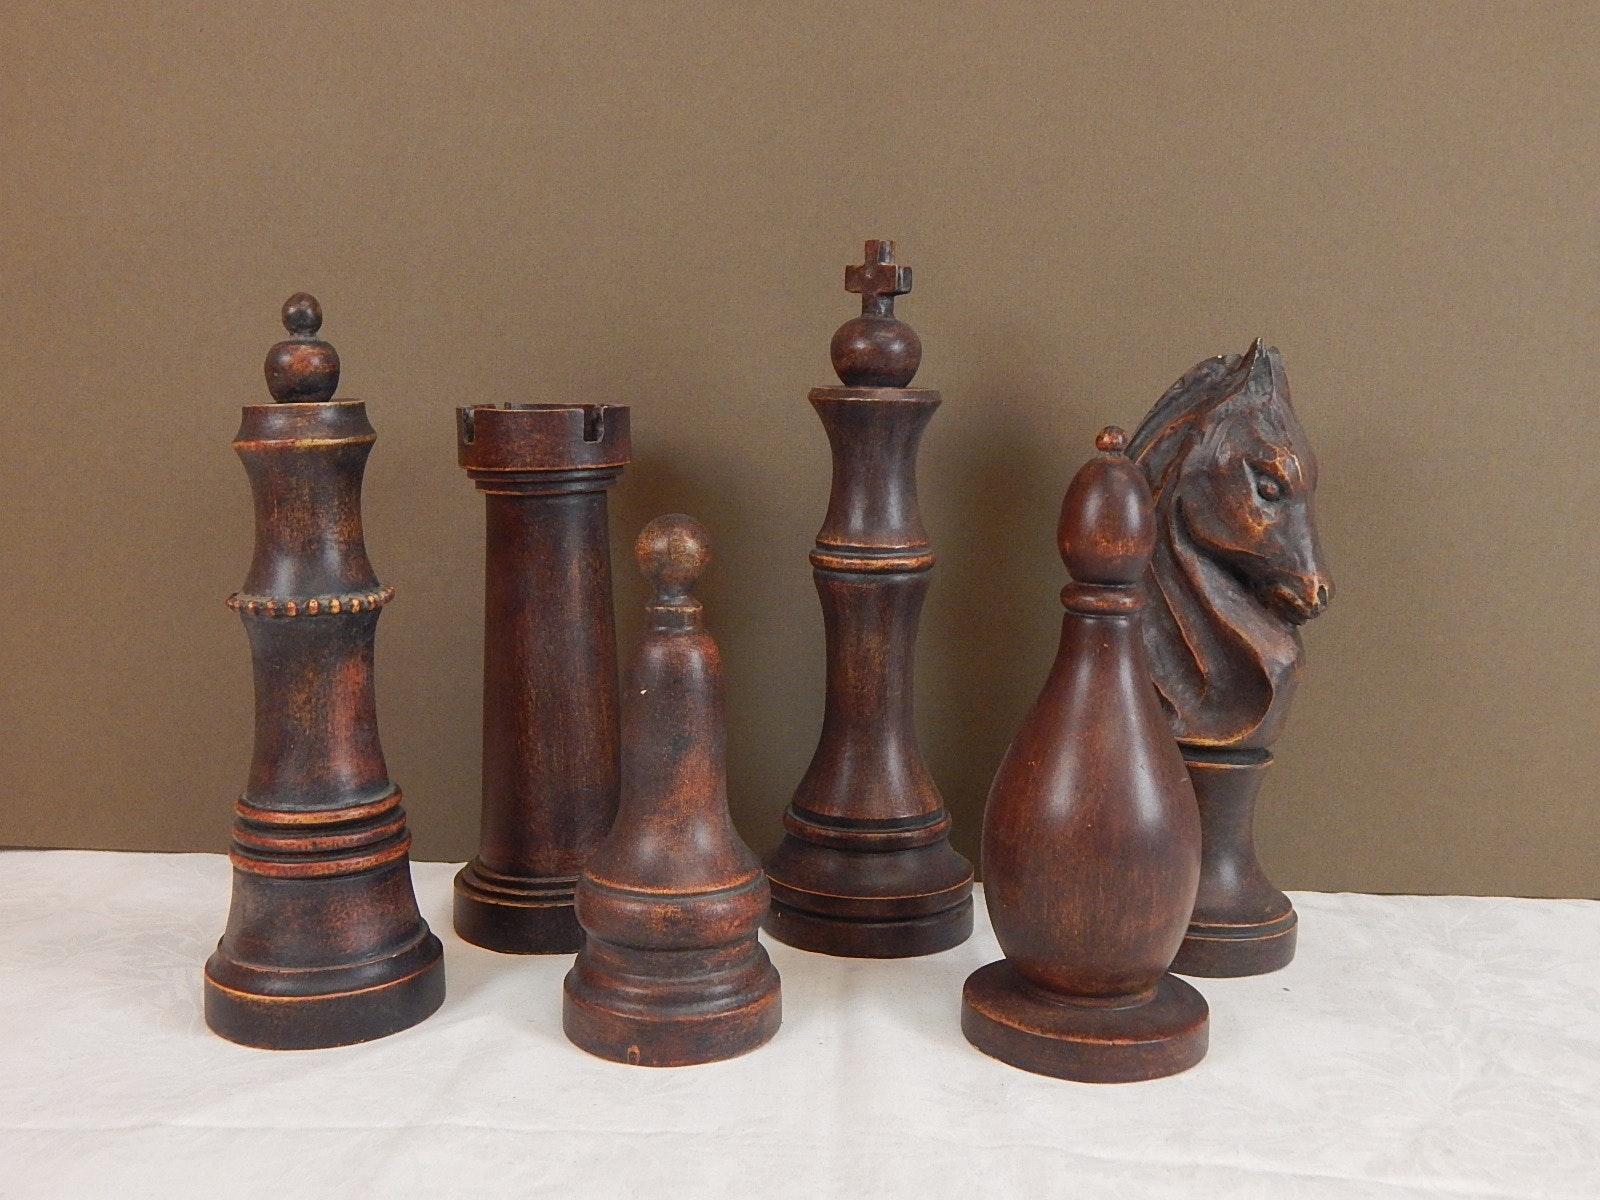 Six Piece Decorative Chess Set Pieces  Ebth. Living Room Nyc. Decoracion De Living Room. Living Room Divider Design. How To Divide A Living Room. Orange And Blue Living Room Decor. Live Chat Room Cam. Rocking Chair Living Room. Decorating Wall Units Living Room